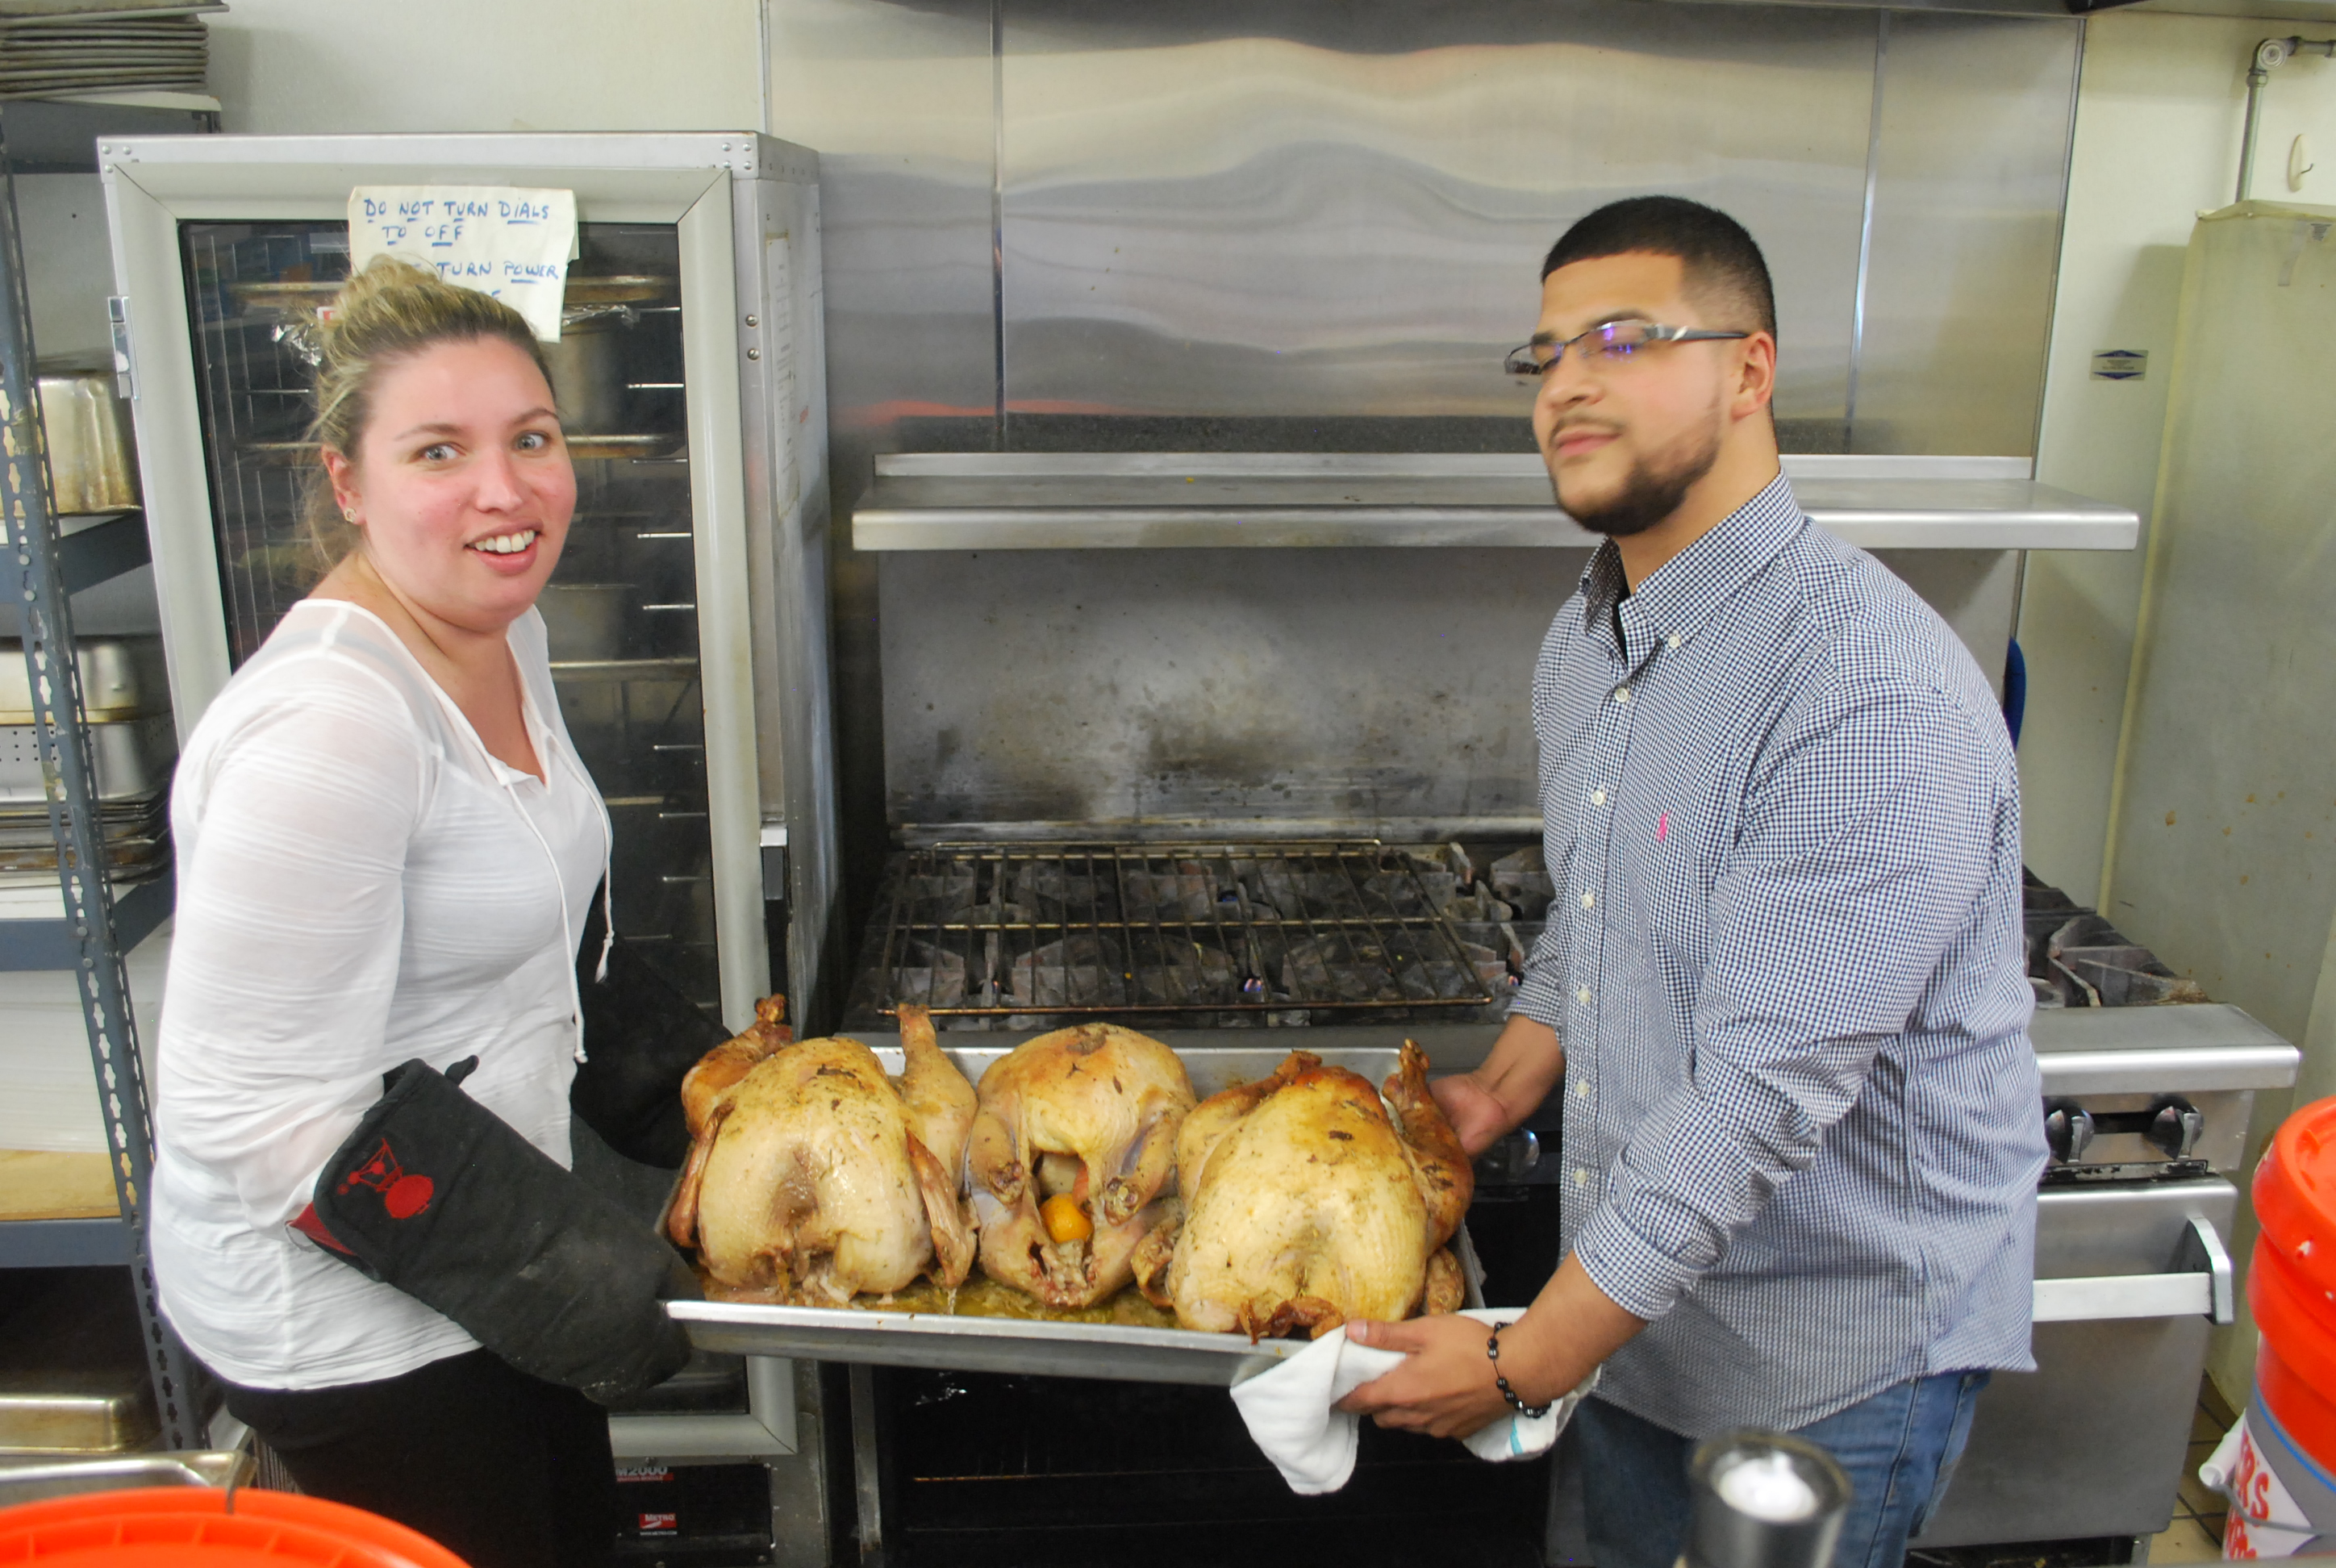 Andrea Marian (left) and Rube Reyes (right) pull turkeys out the oven for  the Nov. 27 community dinner at Lorraine's Soup Kitchen and Pantry in  Chicopee.